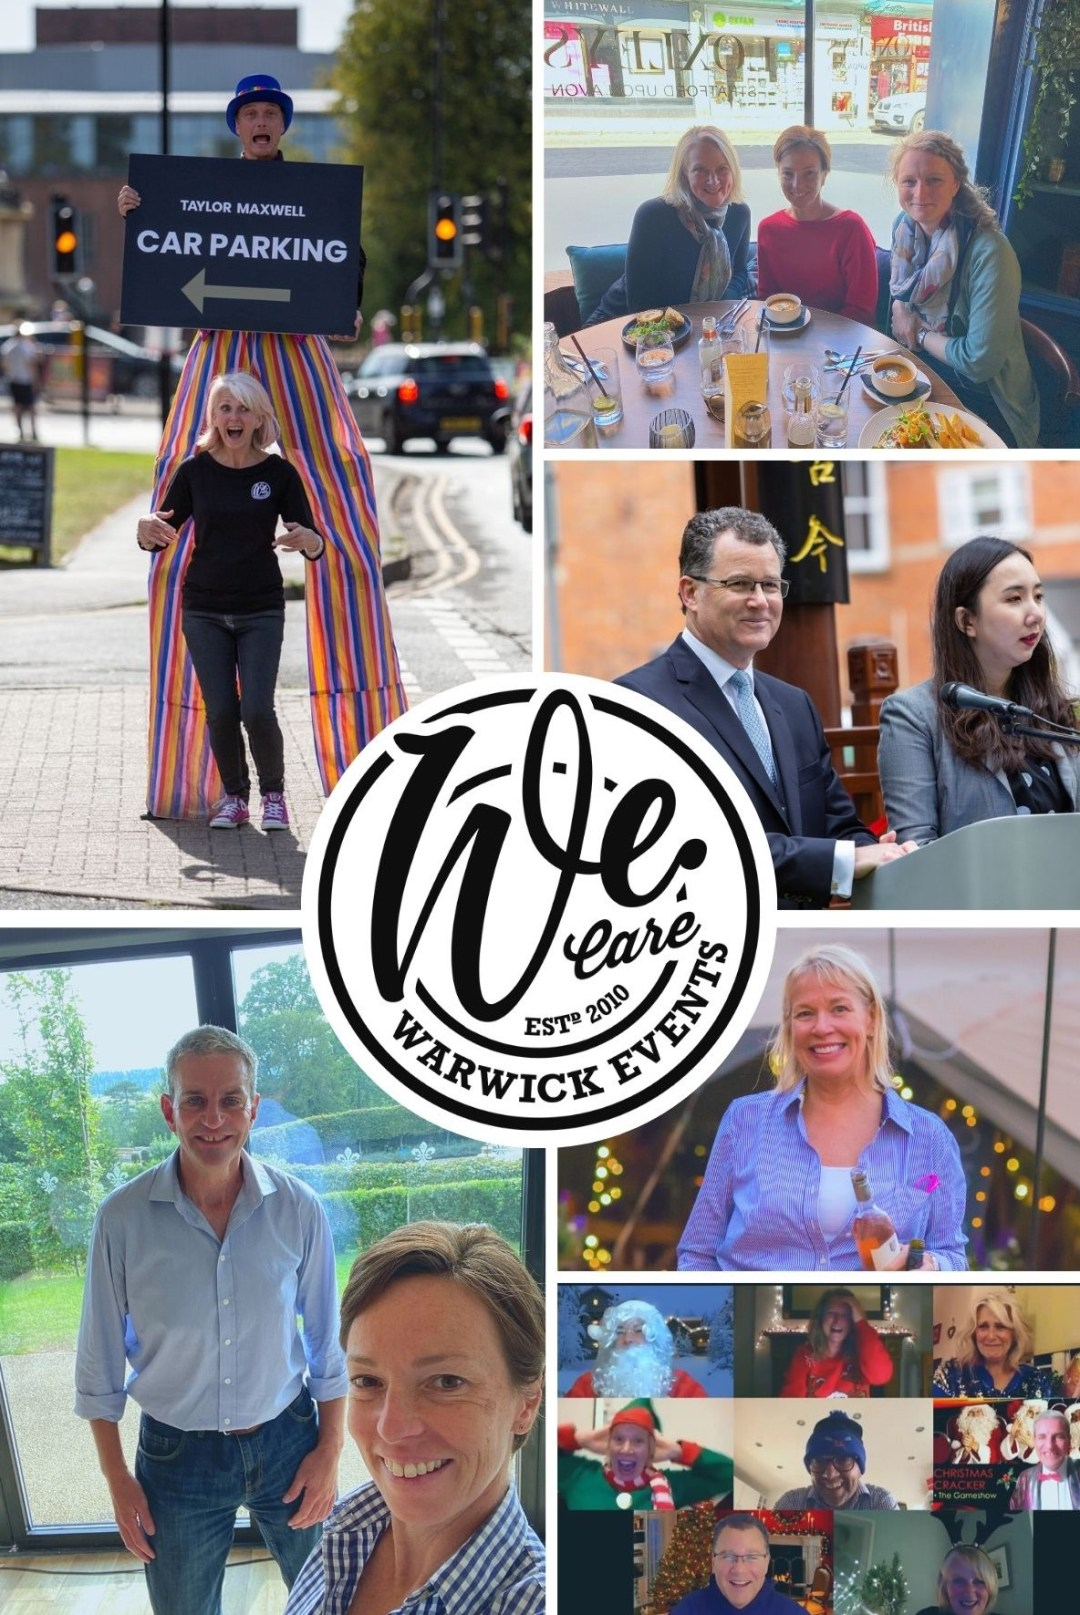 Collage of photos of the Warwick Events' Family